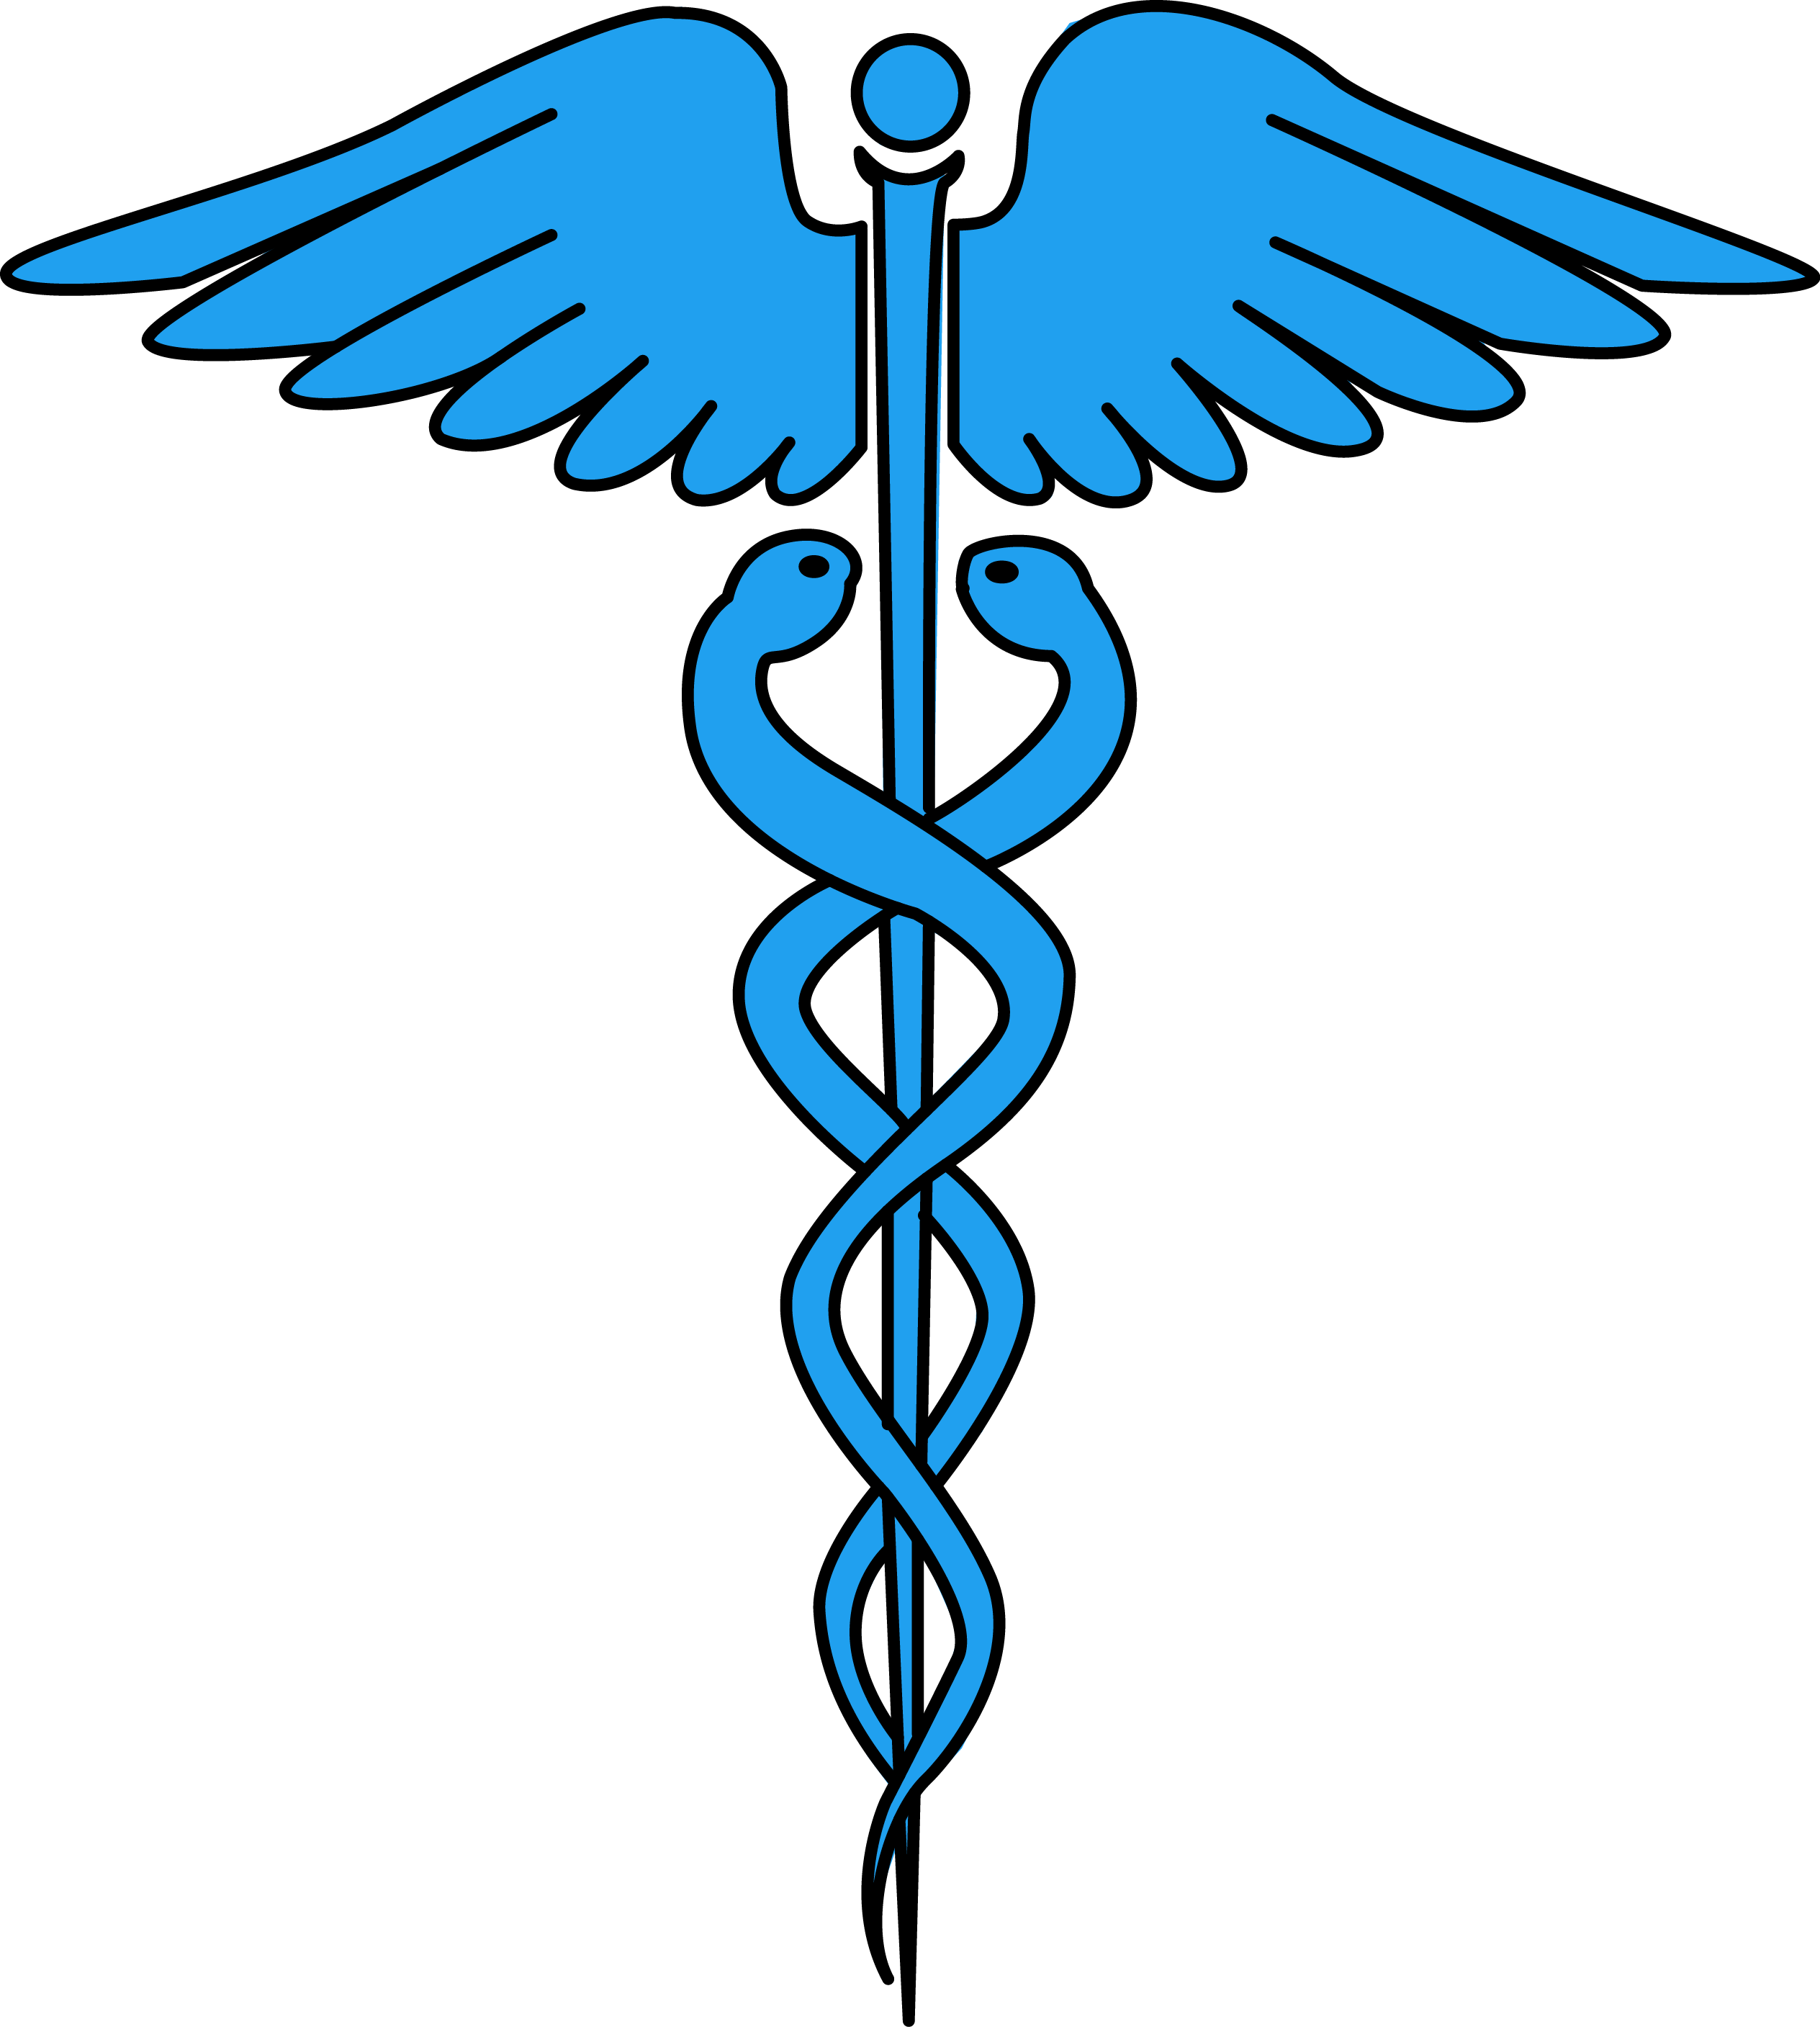 Pro med ambulance logo clipart black and white picture black and white Image for free caduceus medical symbol health high resolution clip ... picture black and white